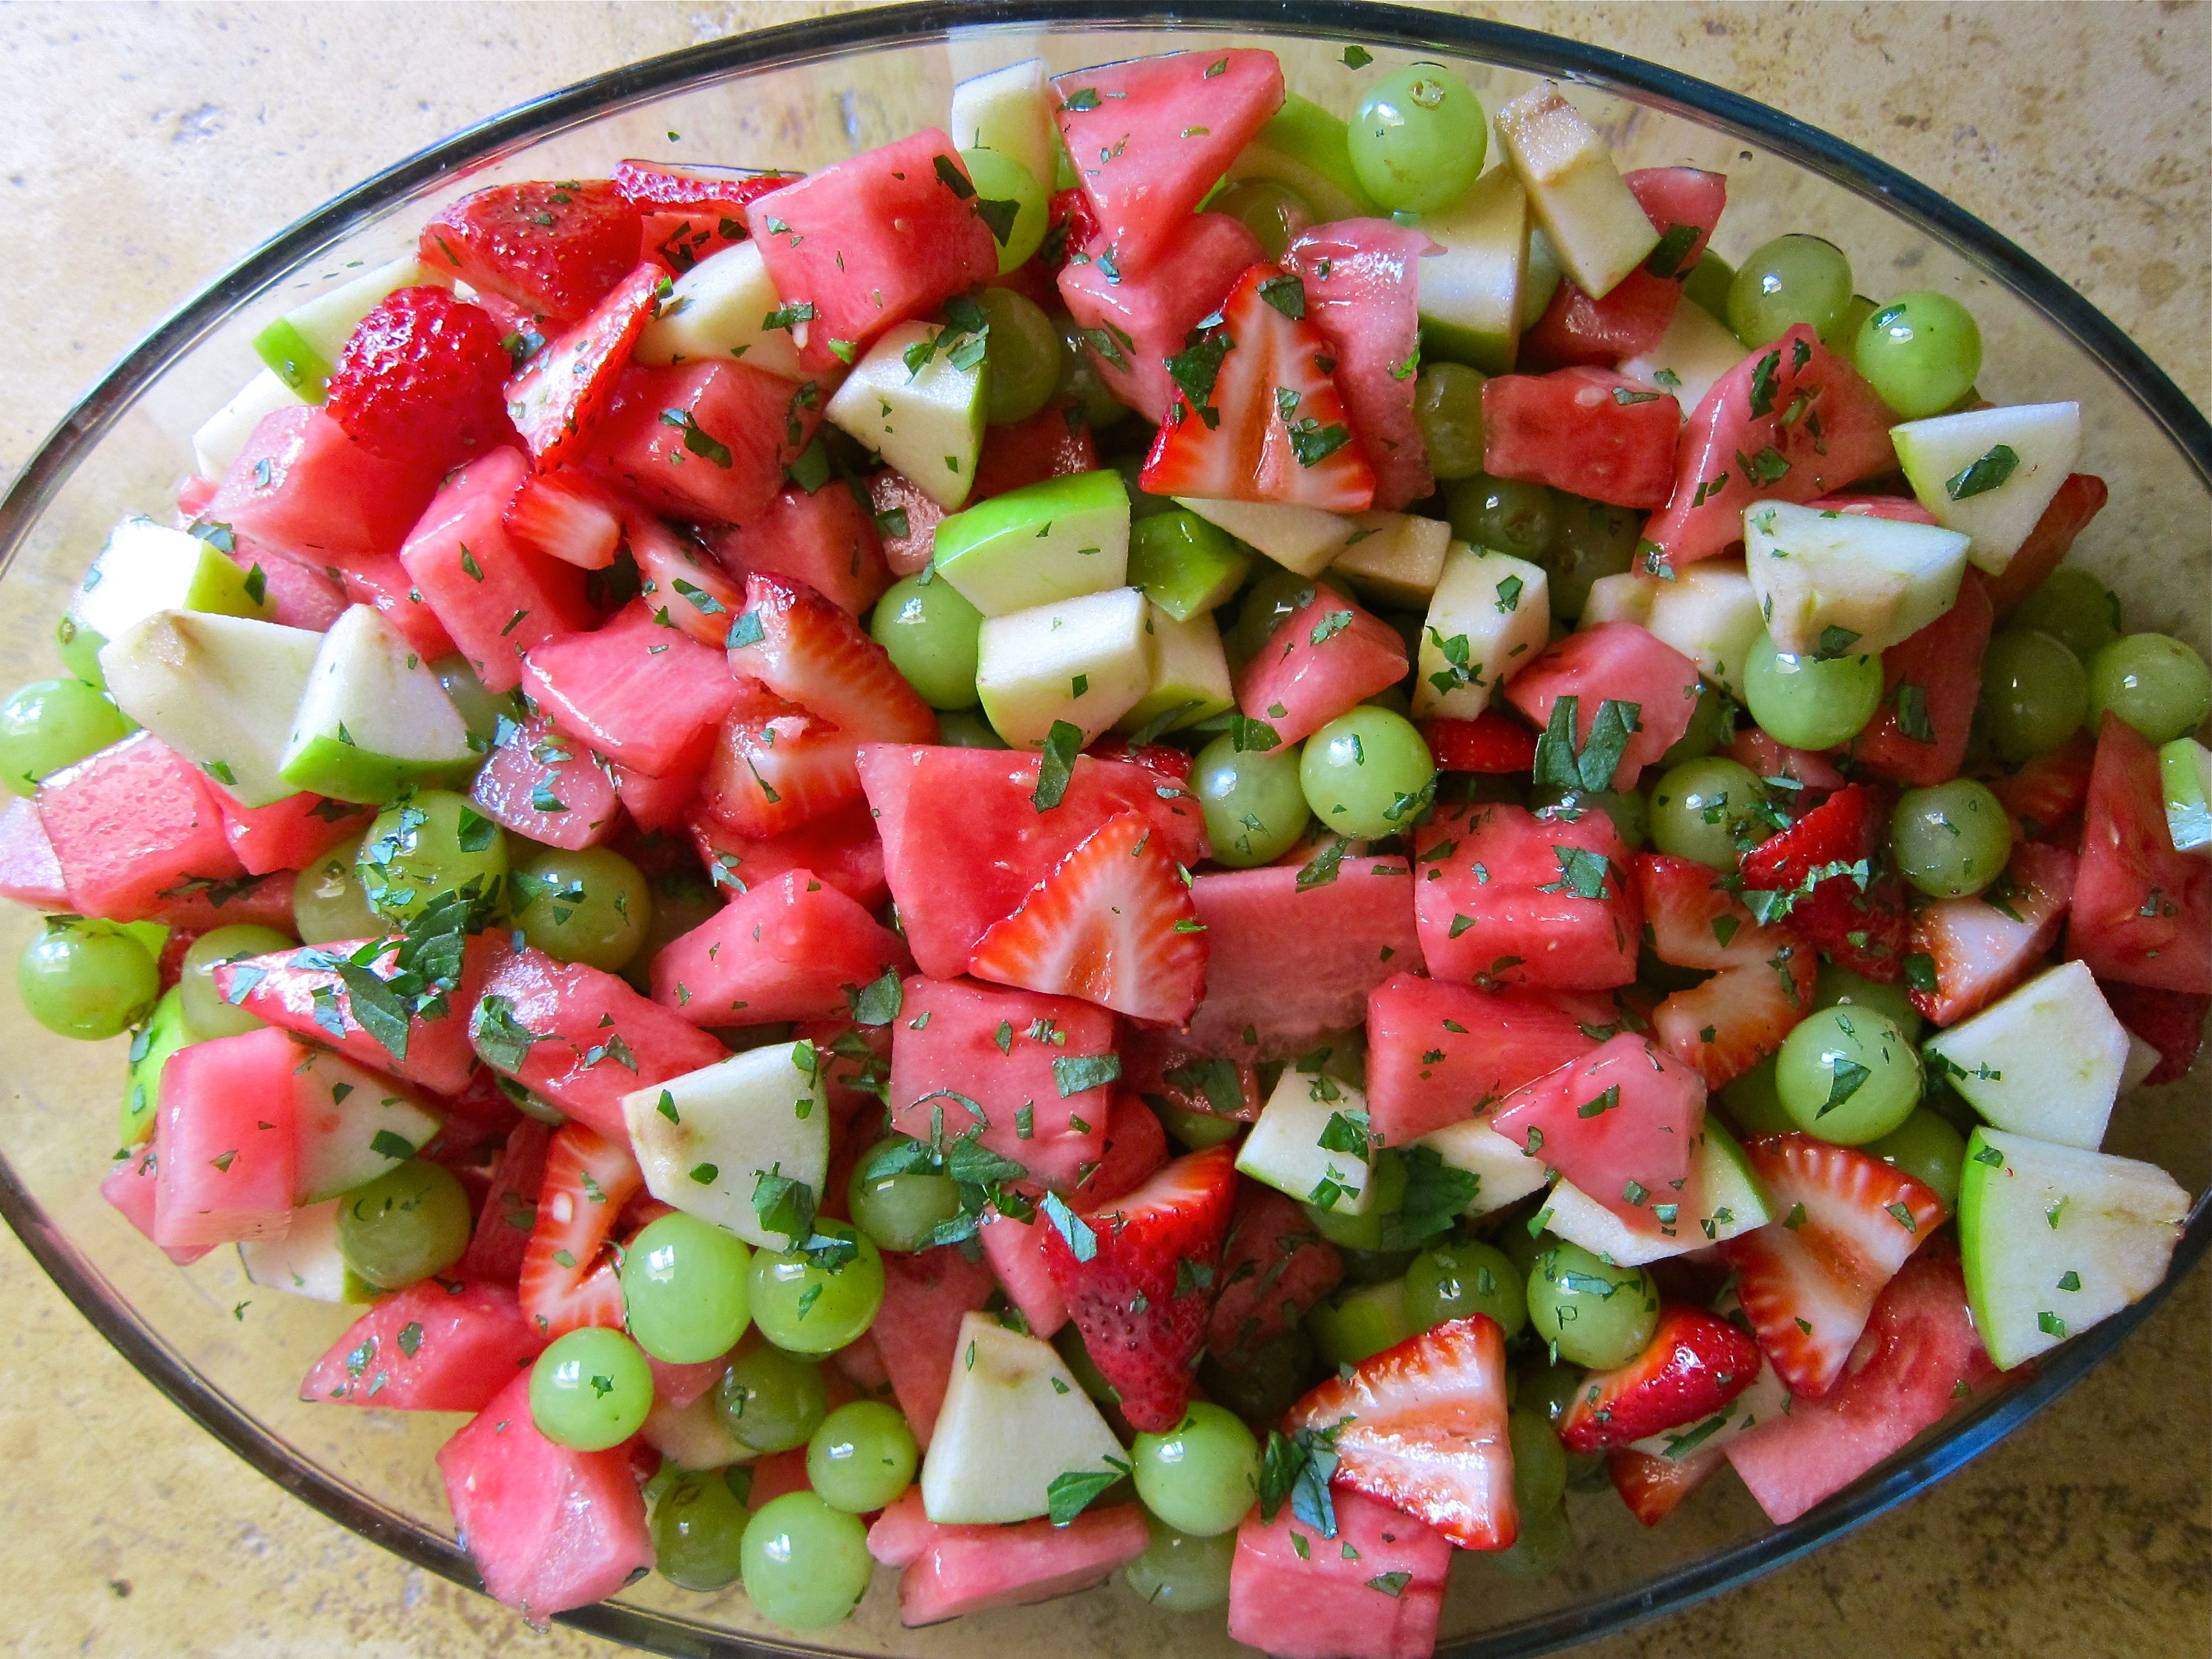 Pink And Green Fruit Salad Watermelon, Green Grapes, Strawberries, And